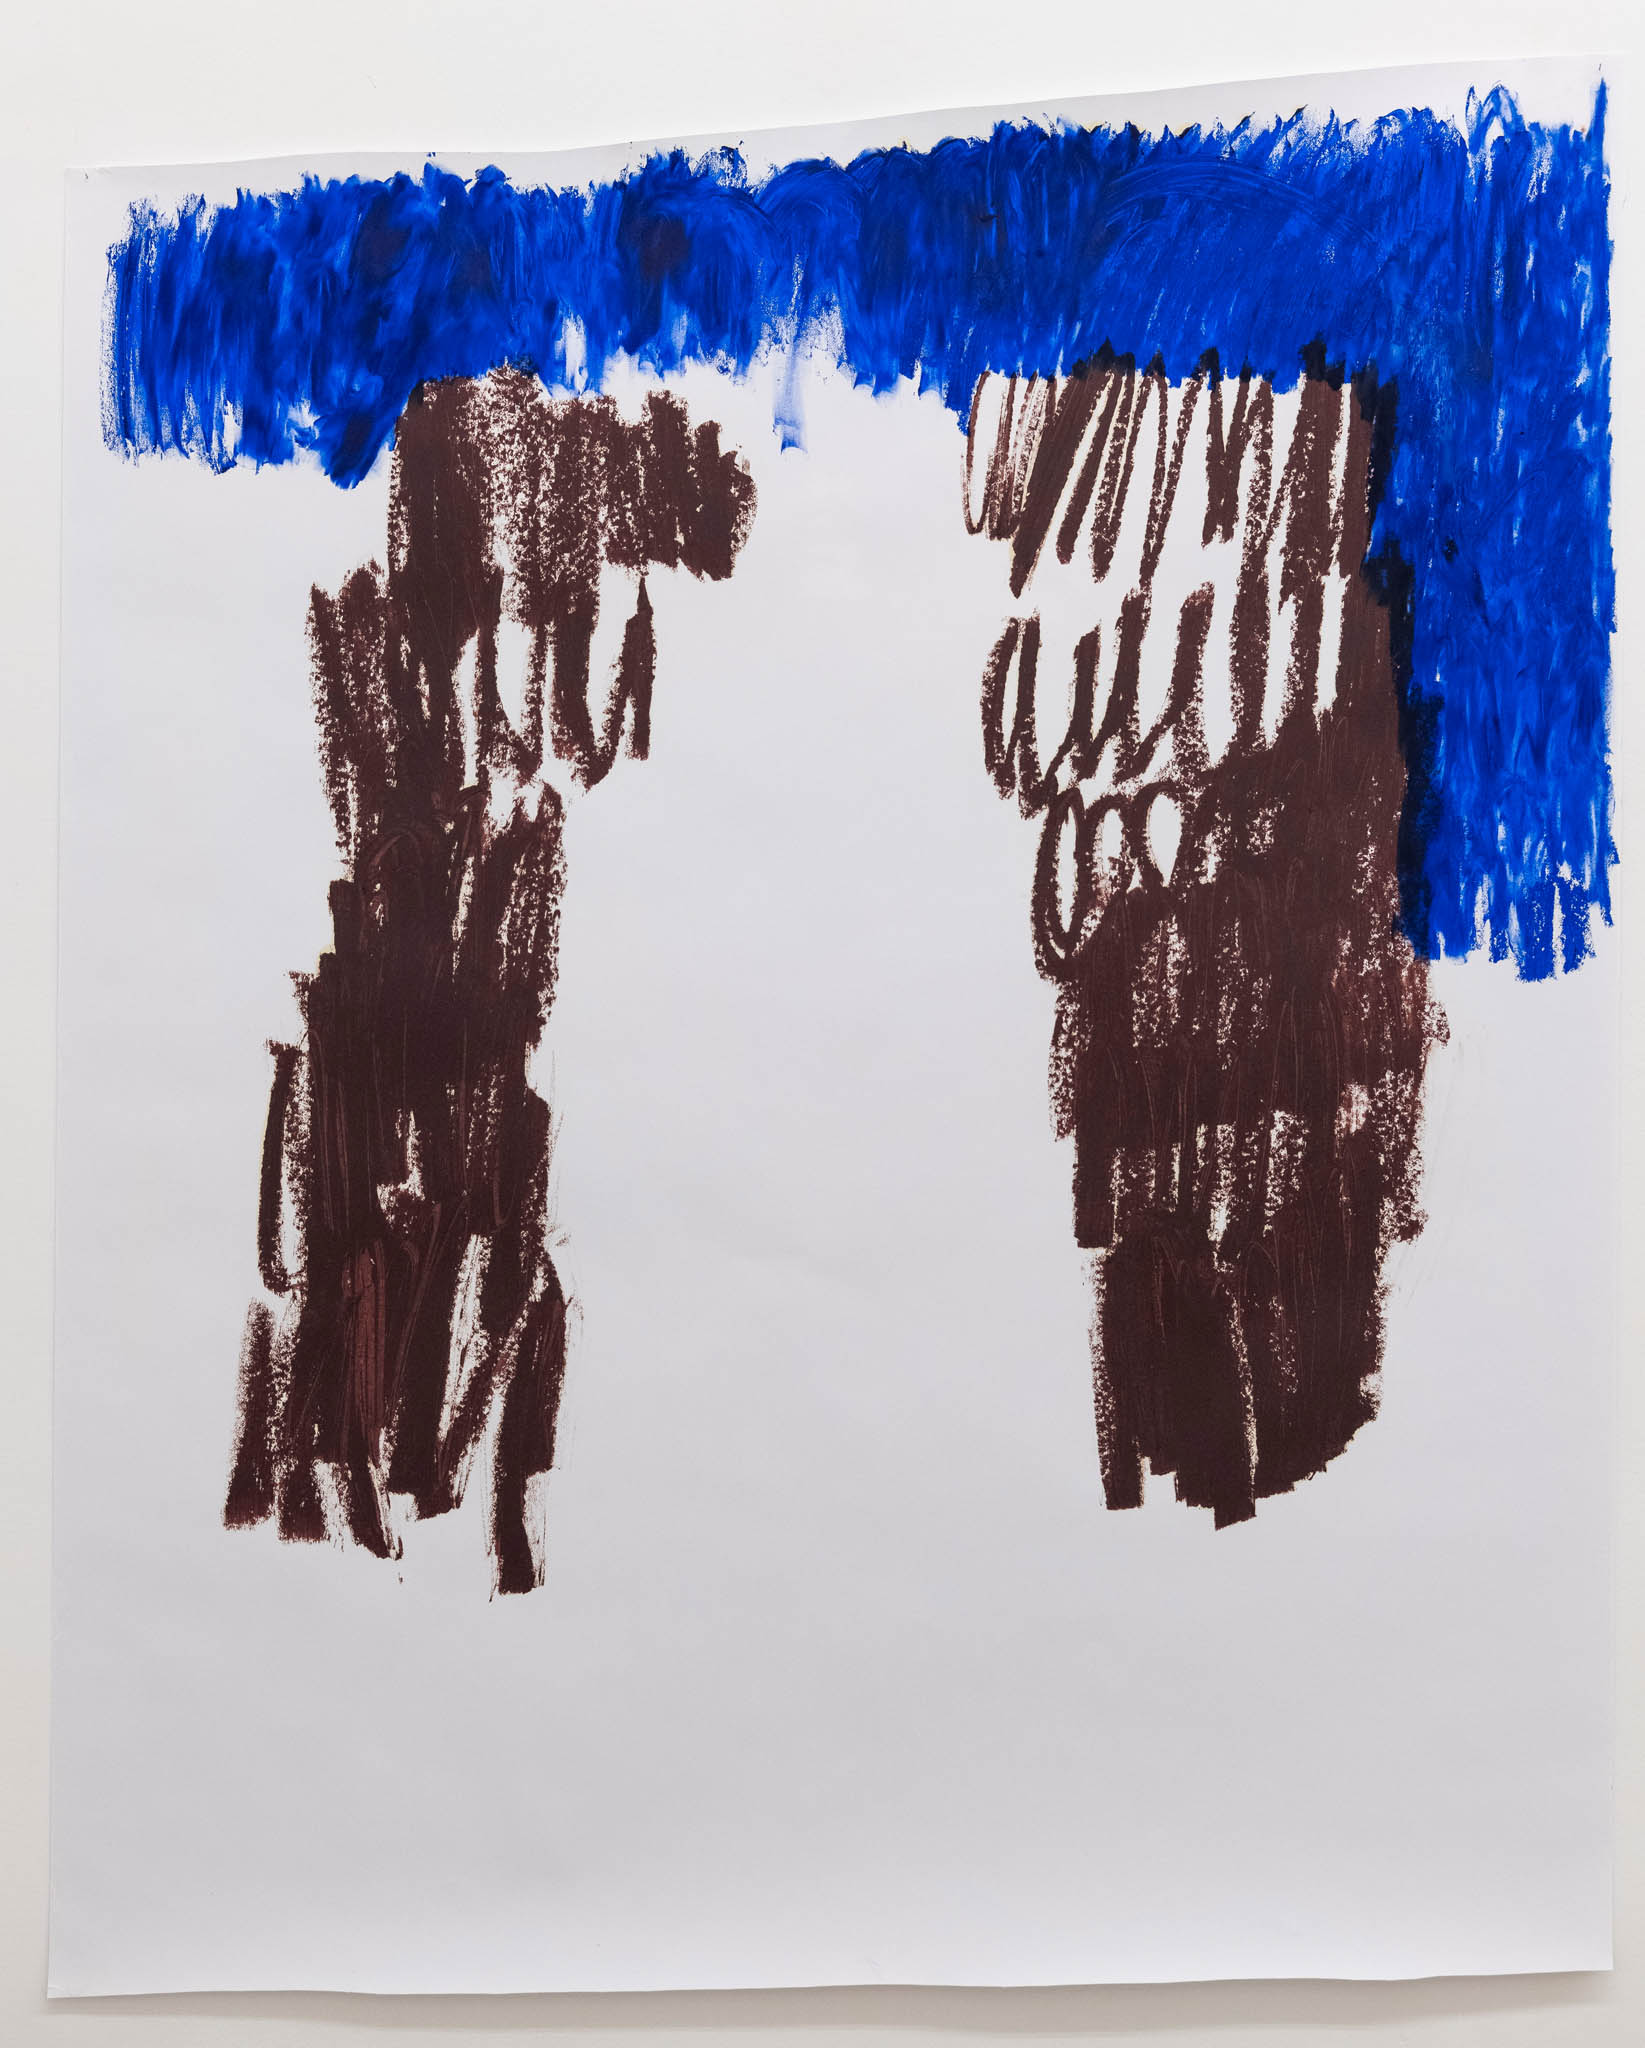 Esther Kläs NY/SKY, 2018, oil stick on paper; Courtesy the artist and Peter Blum Gallery, New York; photo Giorgio Benni